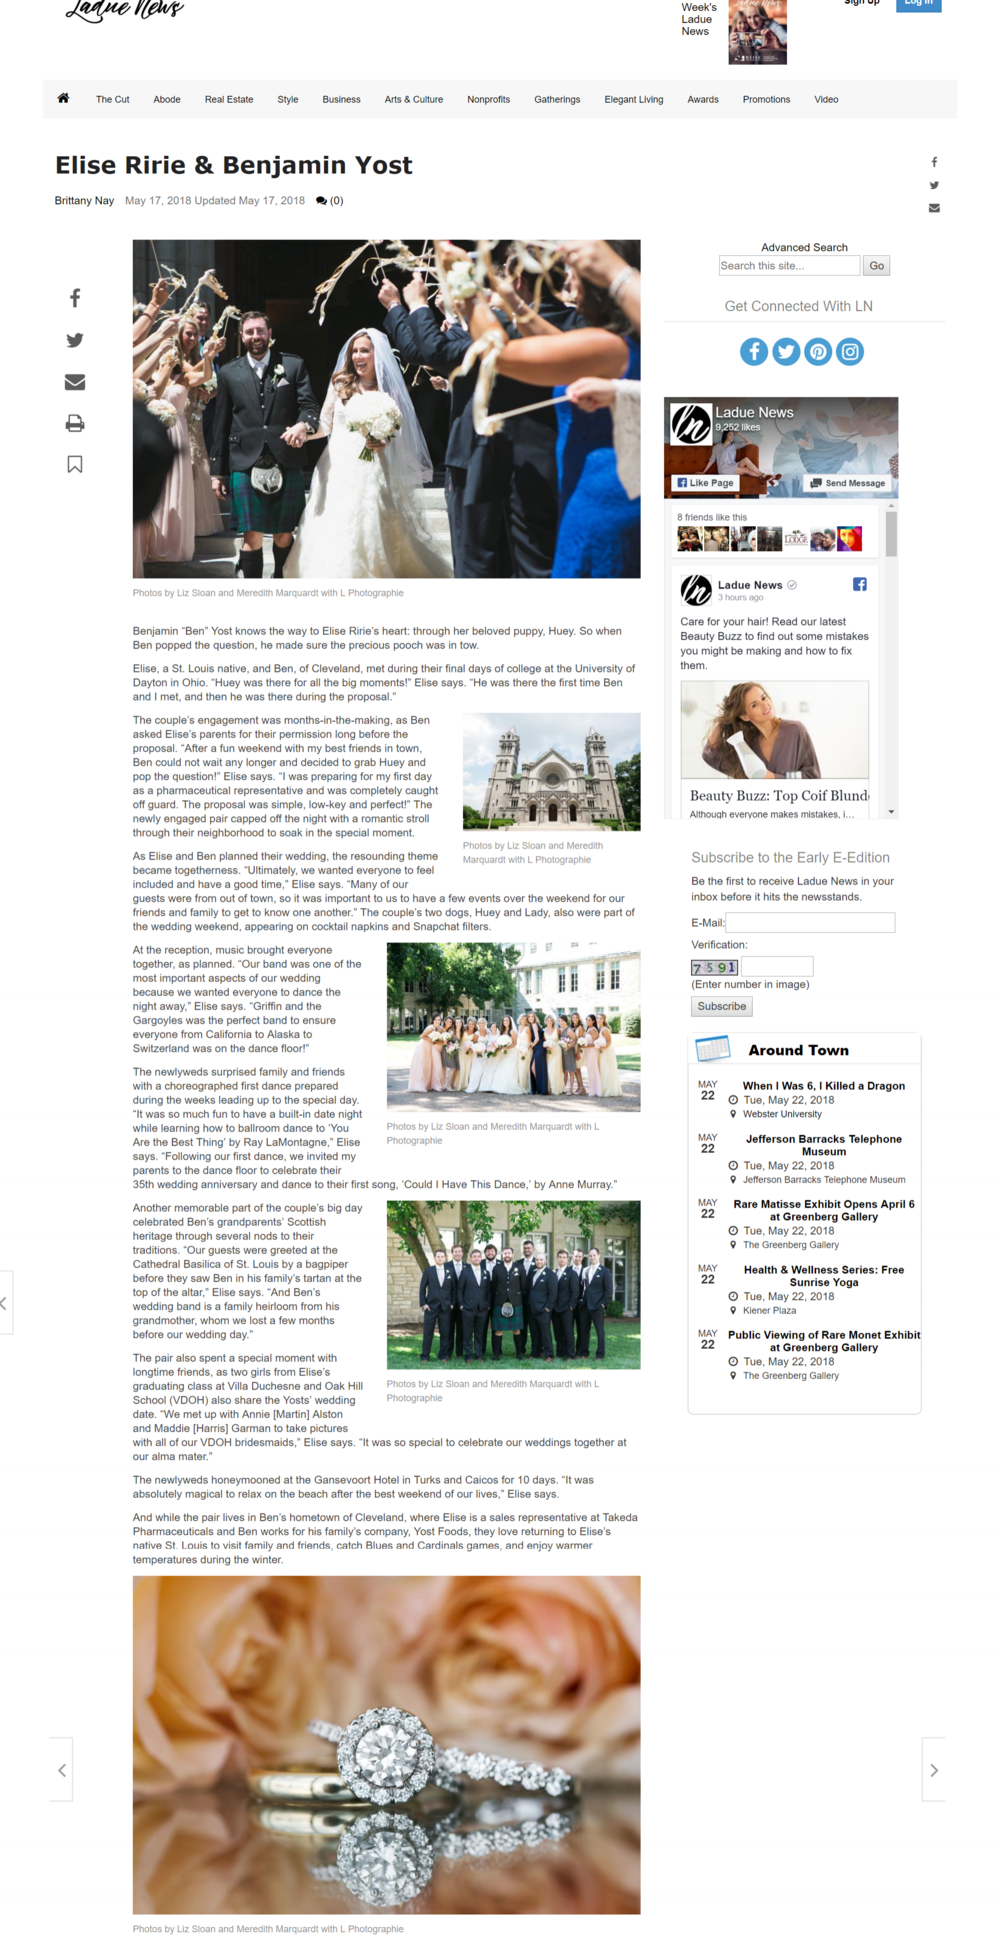 screencapture-laduenews-elegant-living-weddings-elise-ririe-benjamin-yost-article_a4f60b01-93fb-58da-9dd3-b09c7233fd1f-html-2018-05-22-23_10_36.png